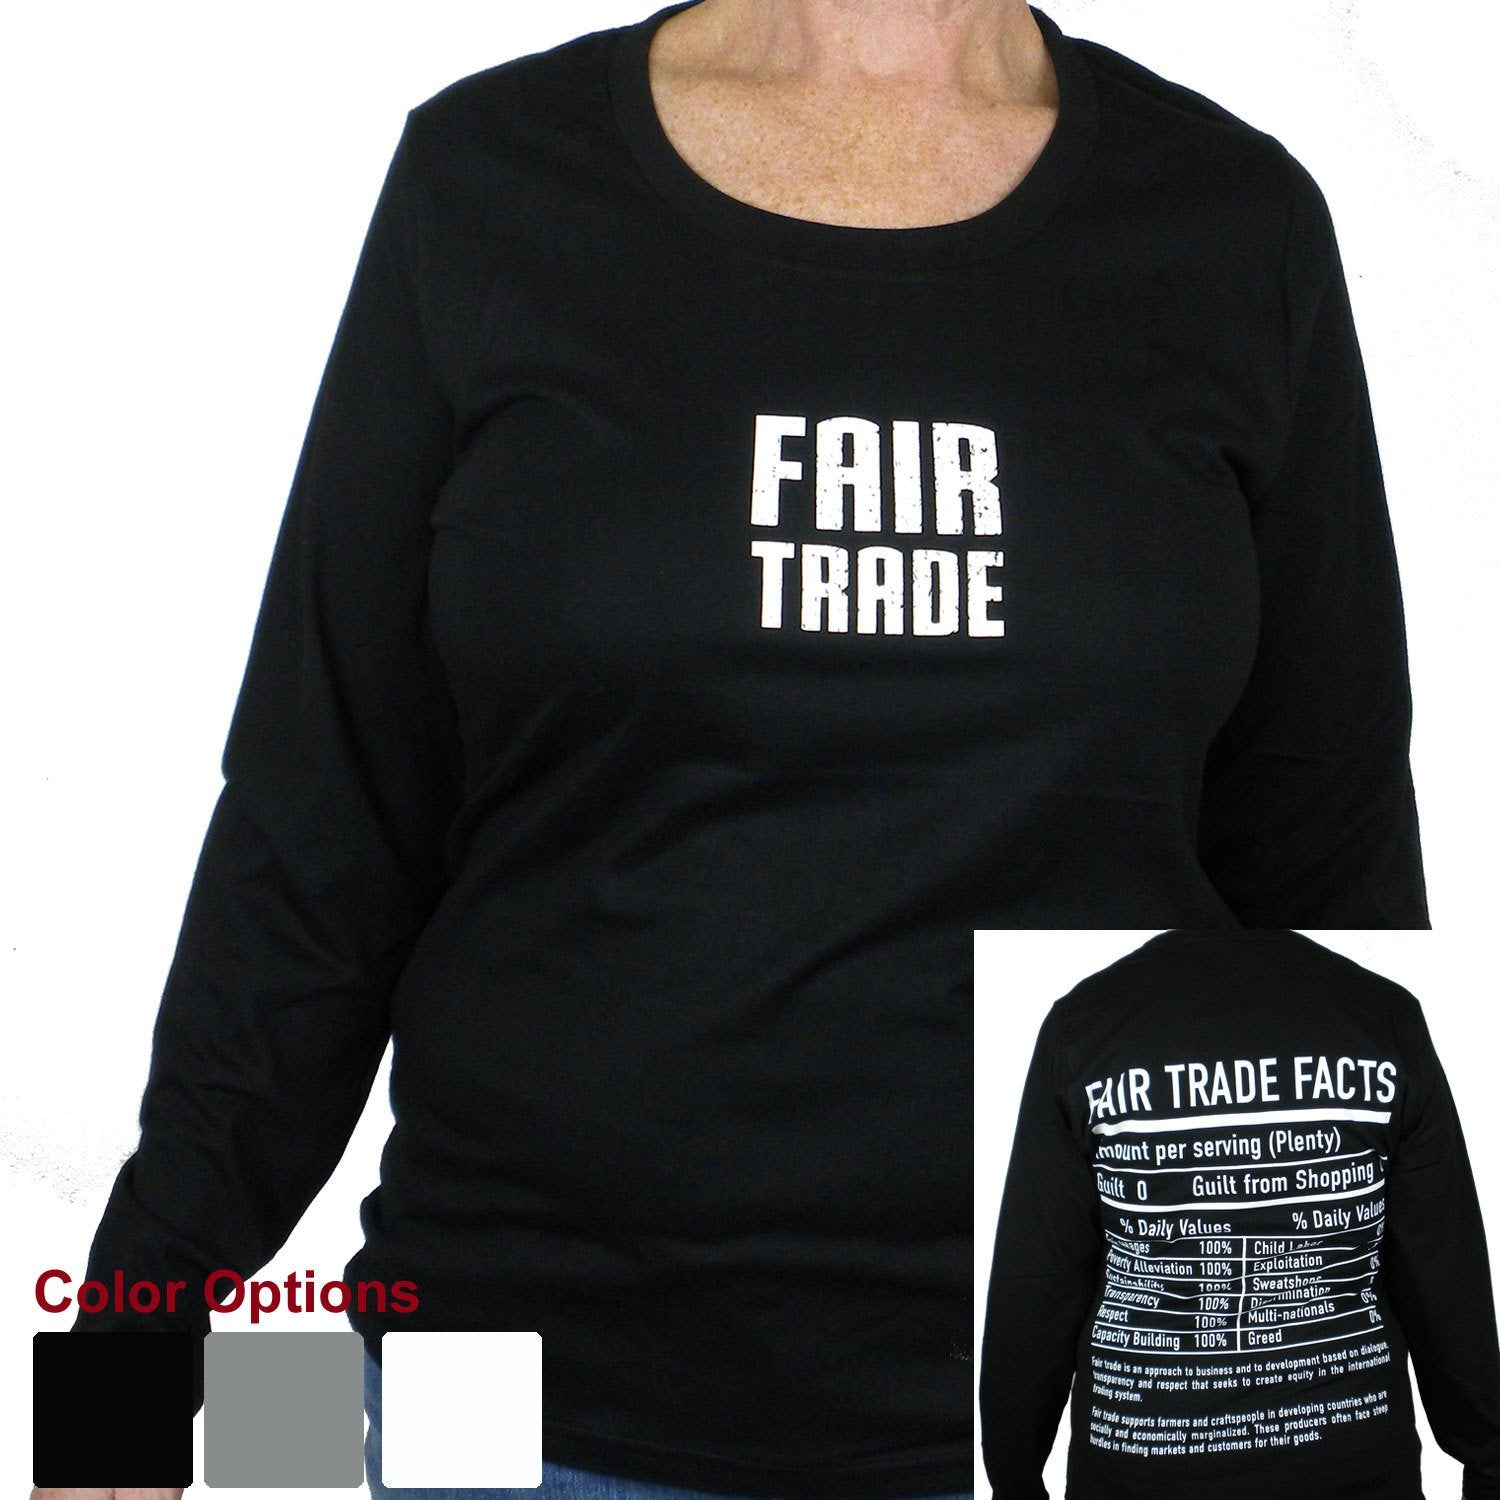 Gray Tee Shirt Long Sleeve Small FT Front - FT Facts on Back - Large